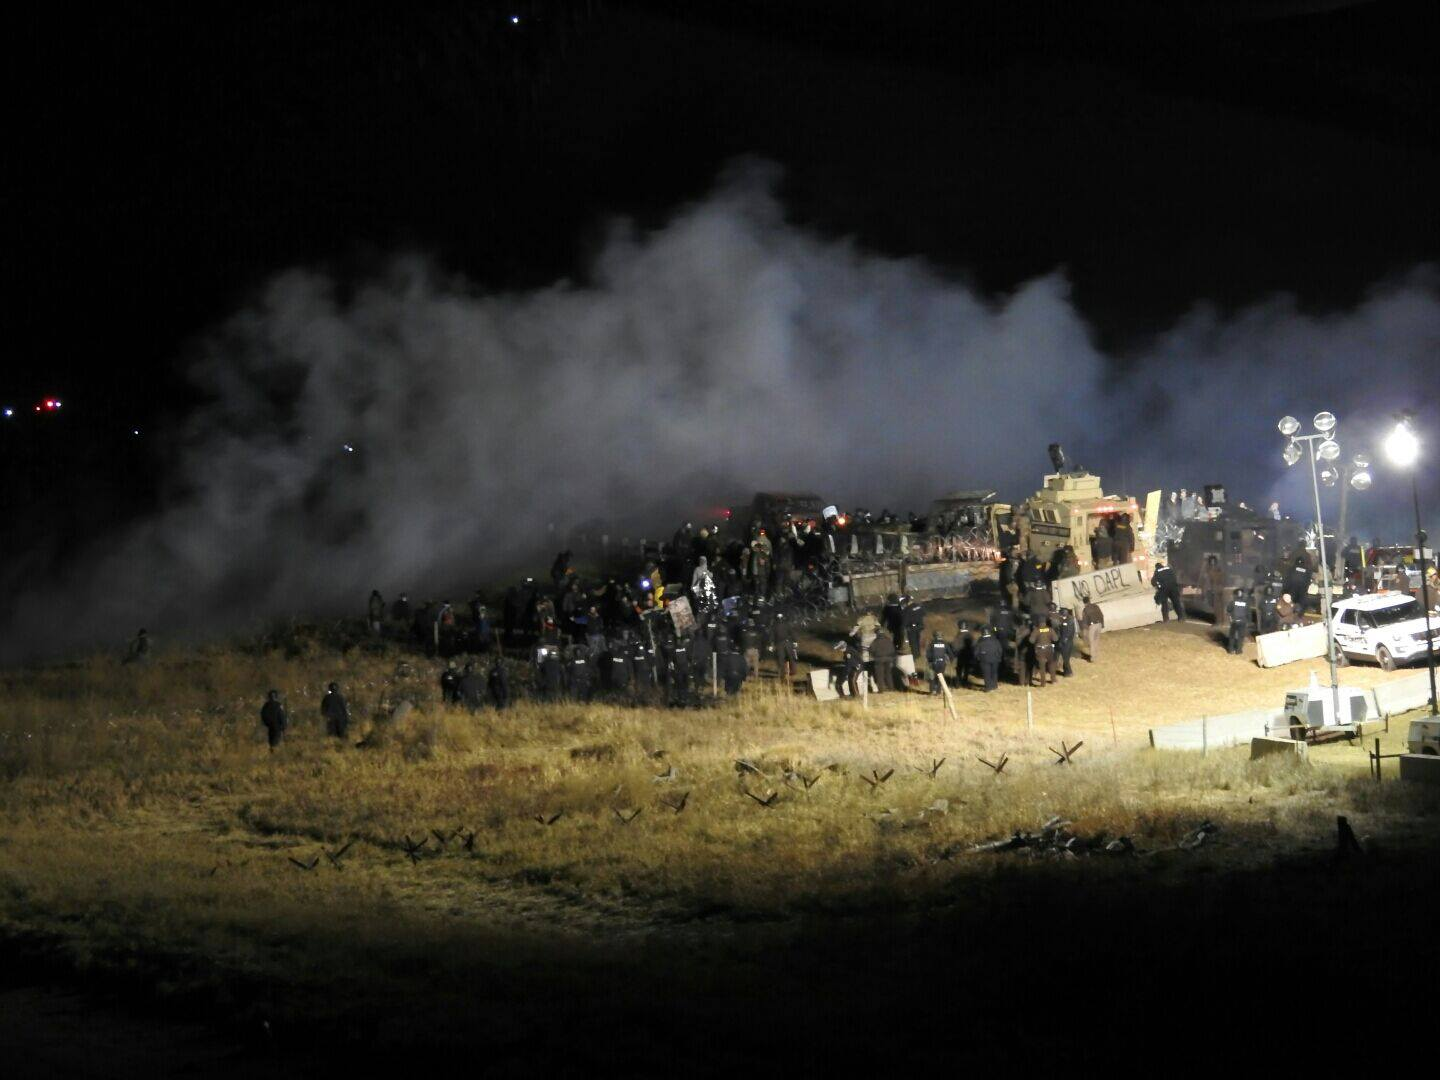 Lakota Country Times: Crow Creek Sioux Tribe breaks with state over #NoDAPL crackdowns